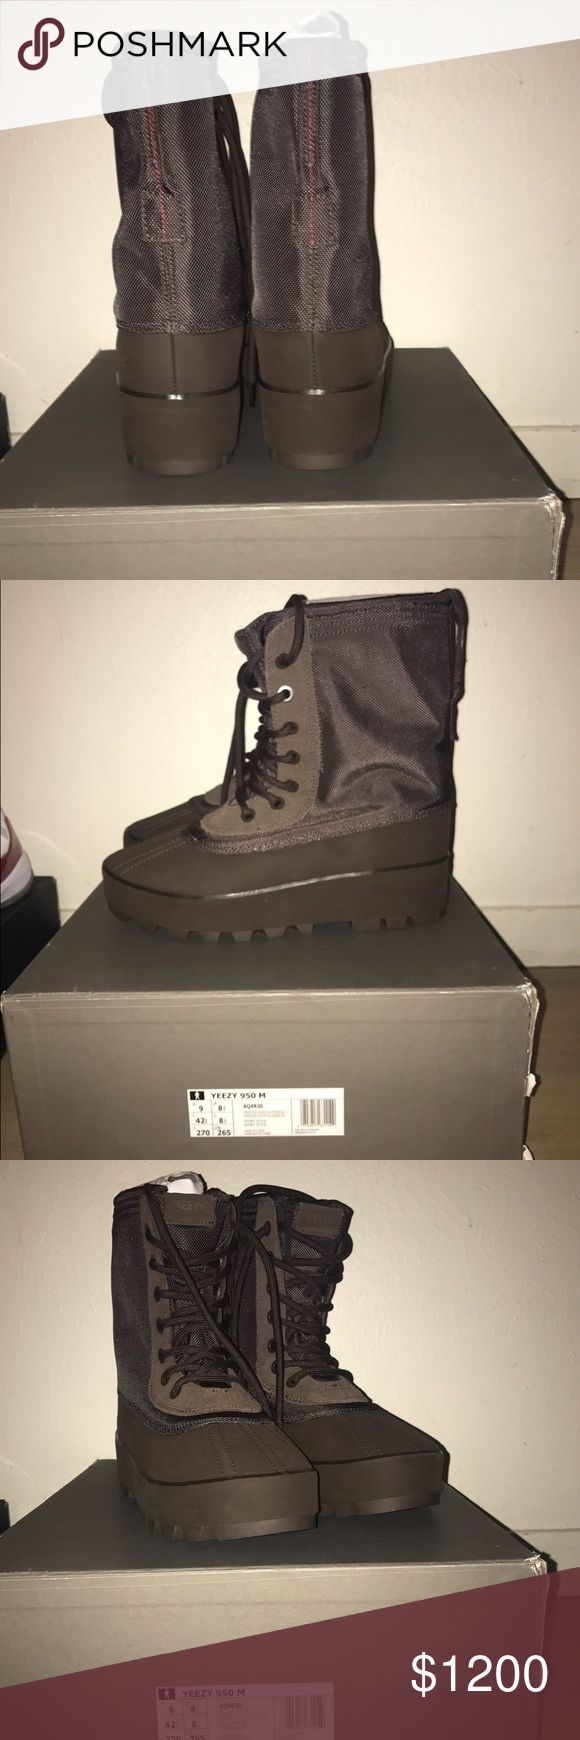 Adidas Yeezy Boost 950 Chocolate DS Never Worn sold out everywhere Authenticated at Sneaker Con Adidas Shoes Boots